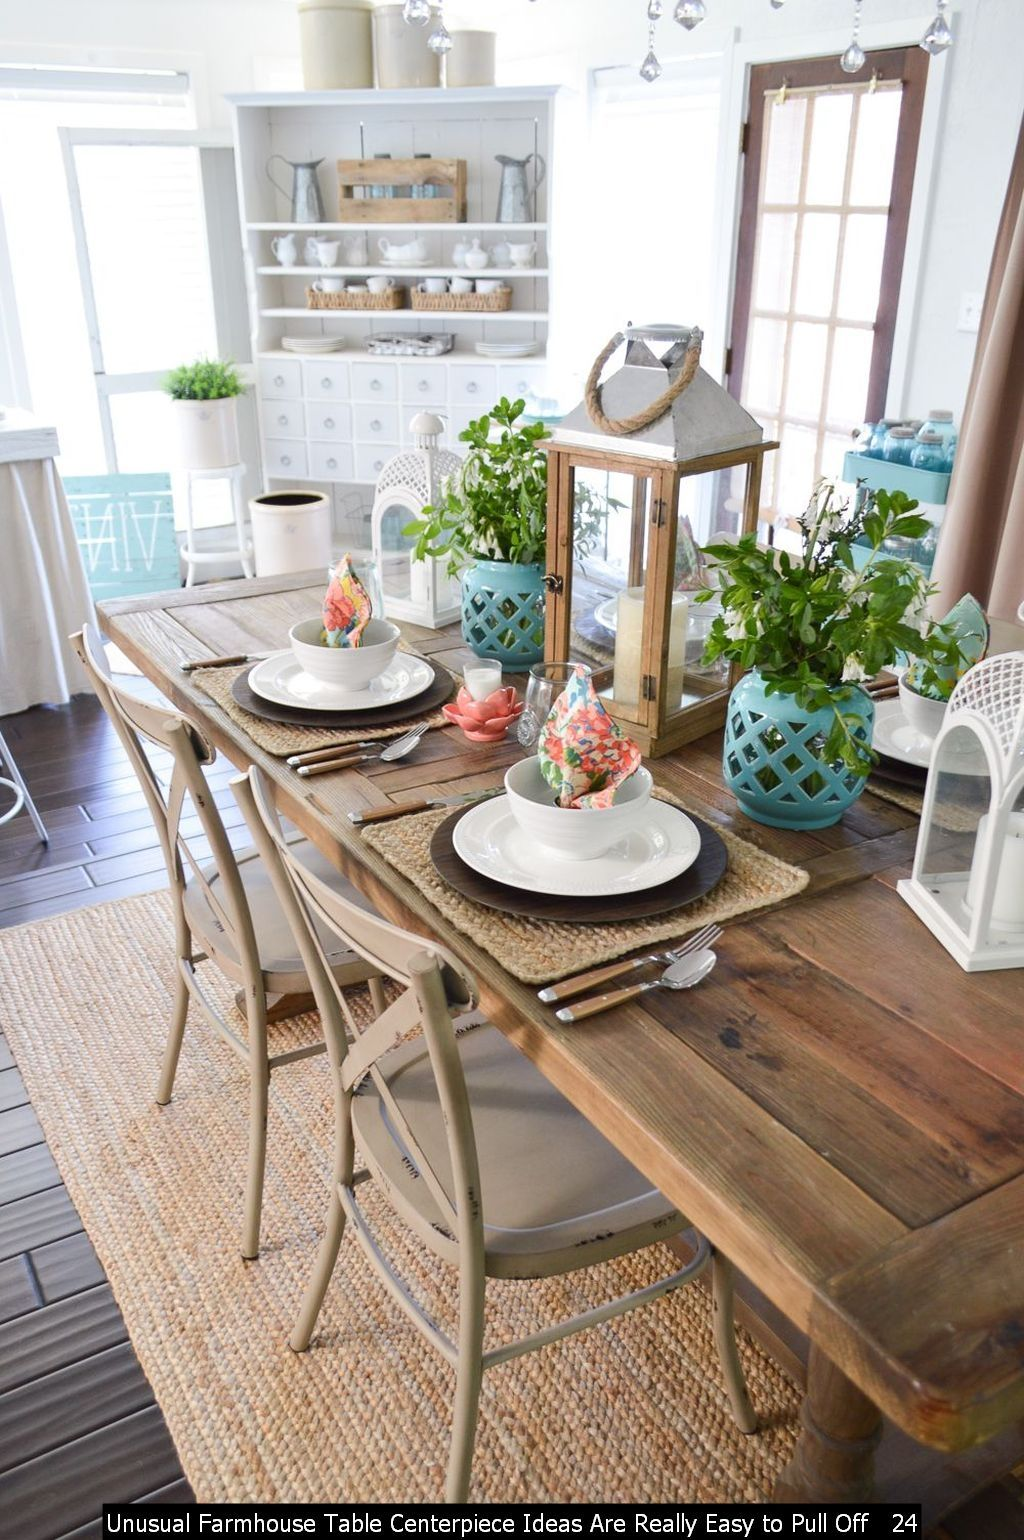 49 Unusual Farmhouse Table Centerpiece Ideas Are Really Easy To Pull Off Dining Room Decor Elegant Dinning Room Ideas Small Dining Room Small